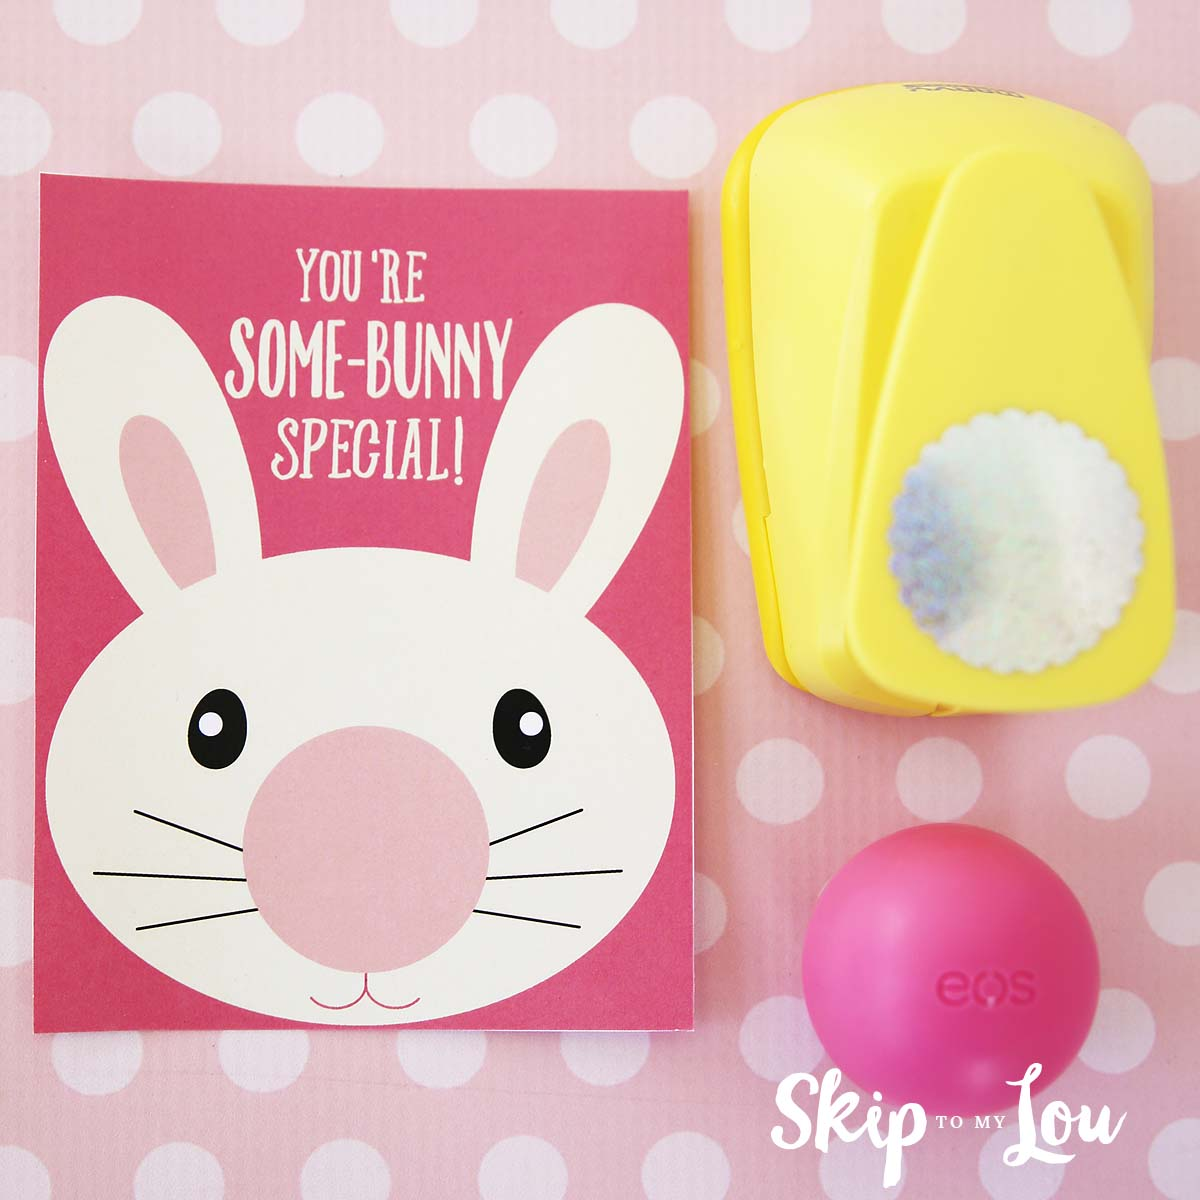 Bunny EOS gift supplies